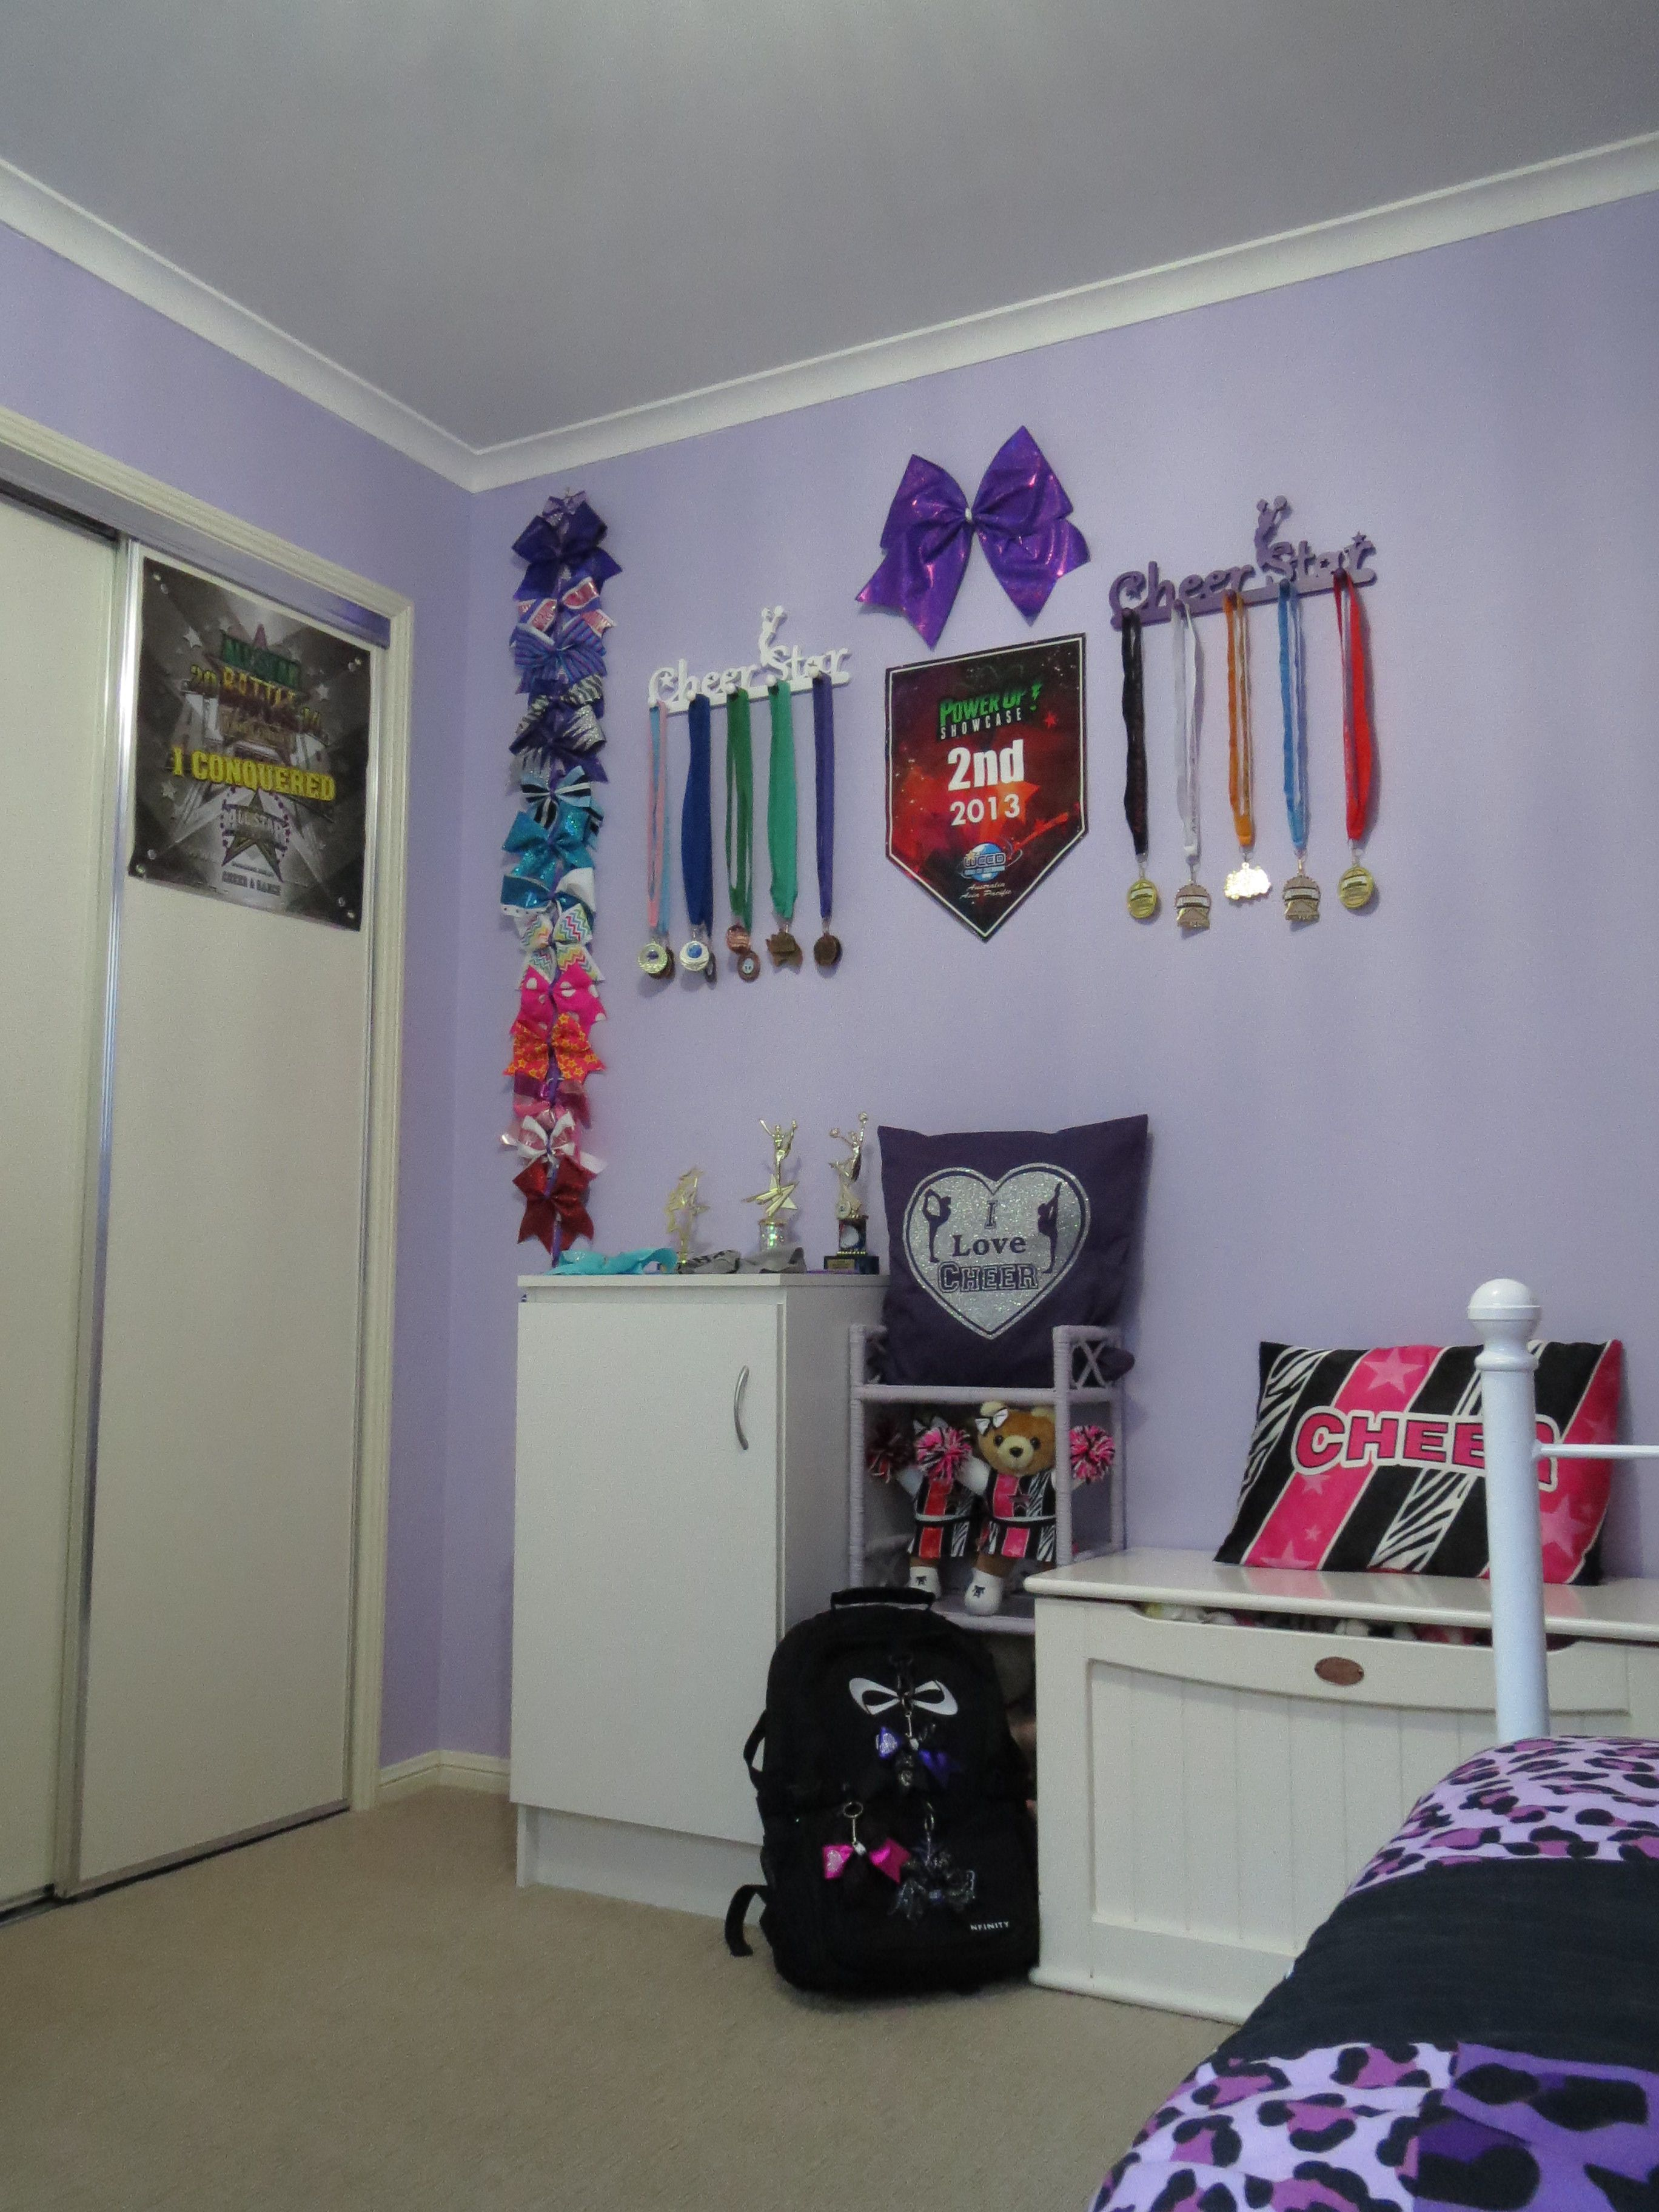 Cheer bow holder for cheer bows and hair bows cheer bow hanger - Cheerleader Wall D Cor 3 Cheer Cheerleader Cheerbows Cheerbowholder Cheerleading Decorationscheerleading Bedroomcheer Bowscheer Bow Holderscheer